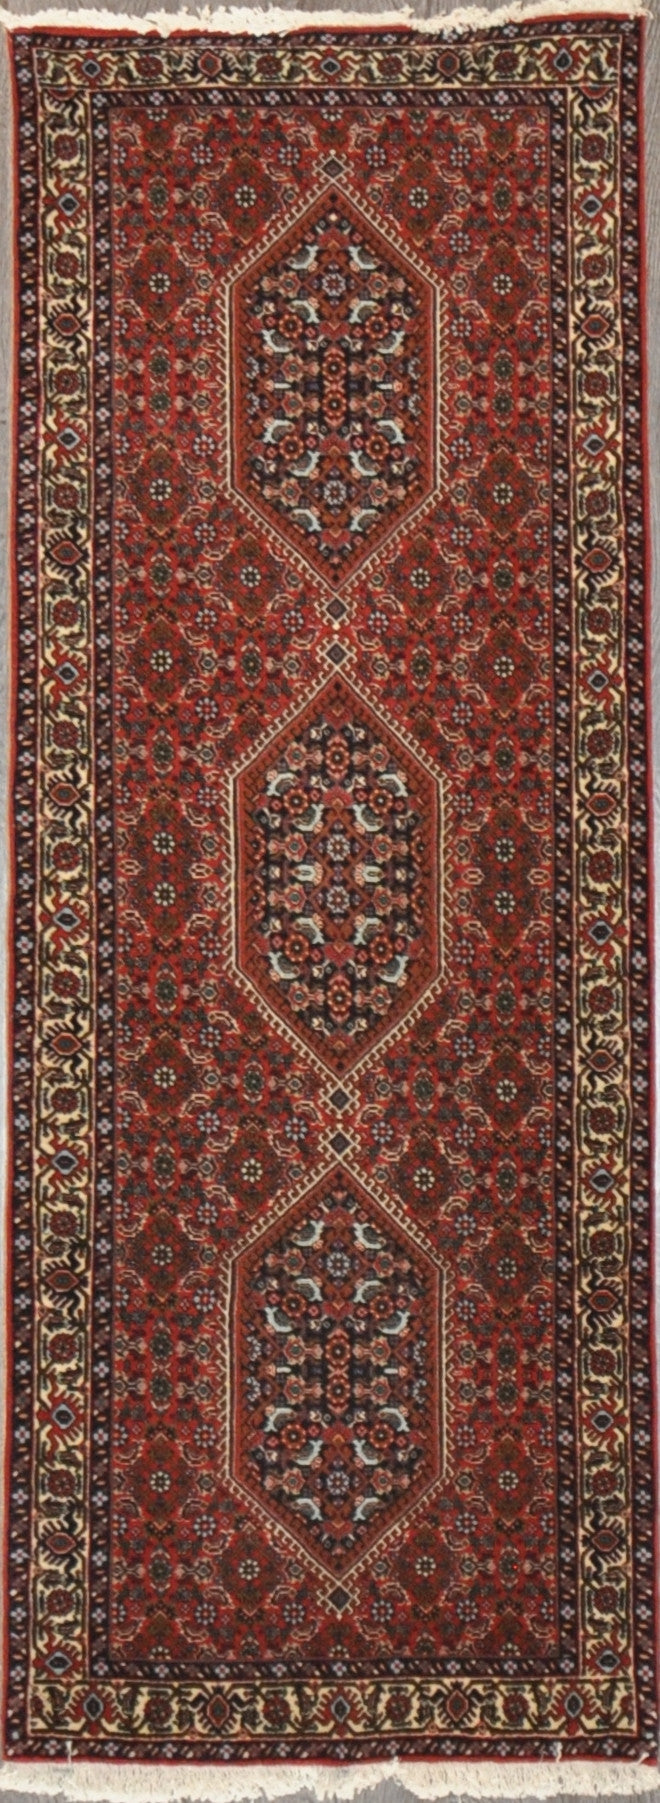 2.5x8.3 Persian bijar runner  #37191